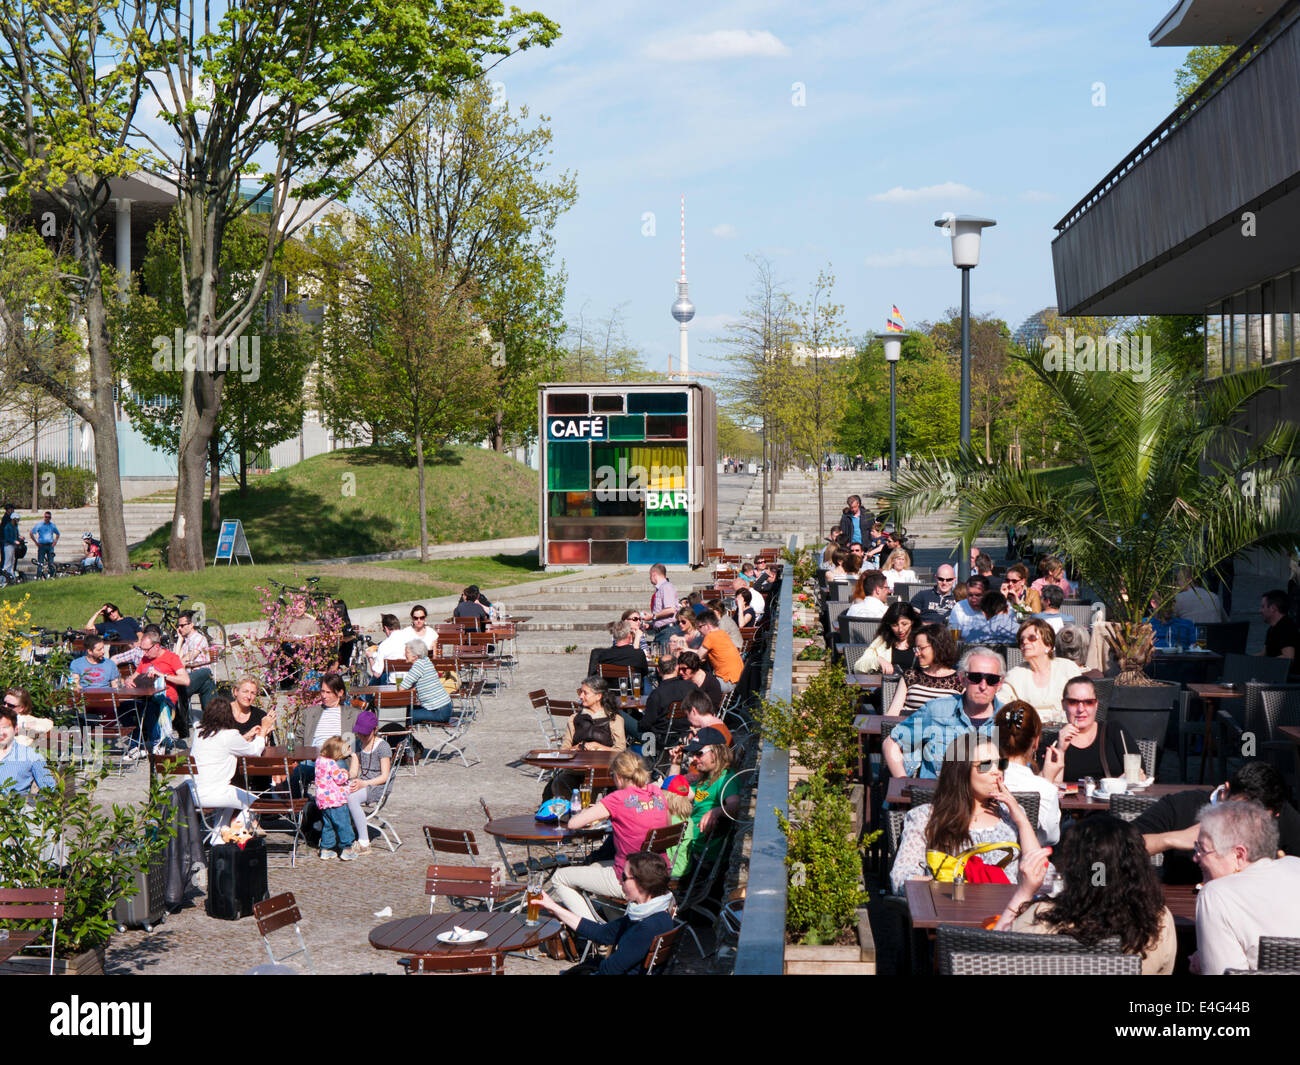 A cafe bar restaurant outside The House of Worlds Cultures in Berlin Germany - Stock Image